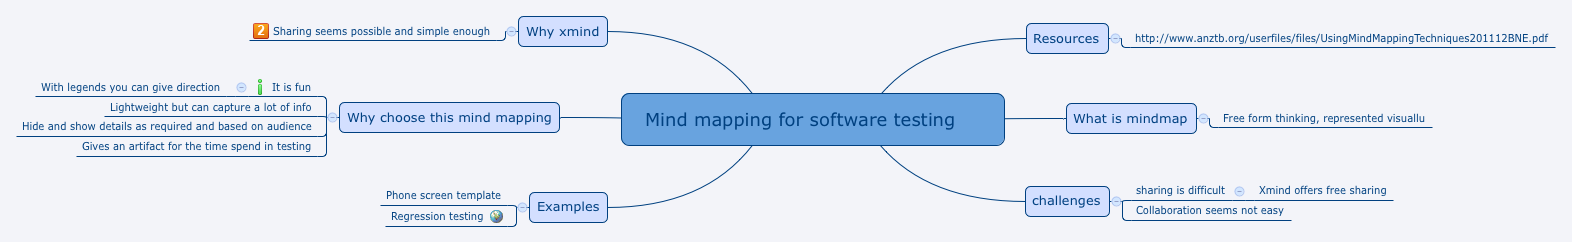 Mind mapping for software testing